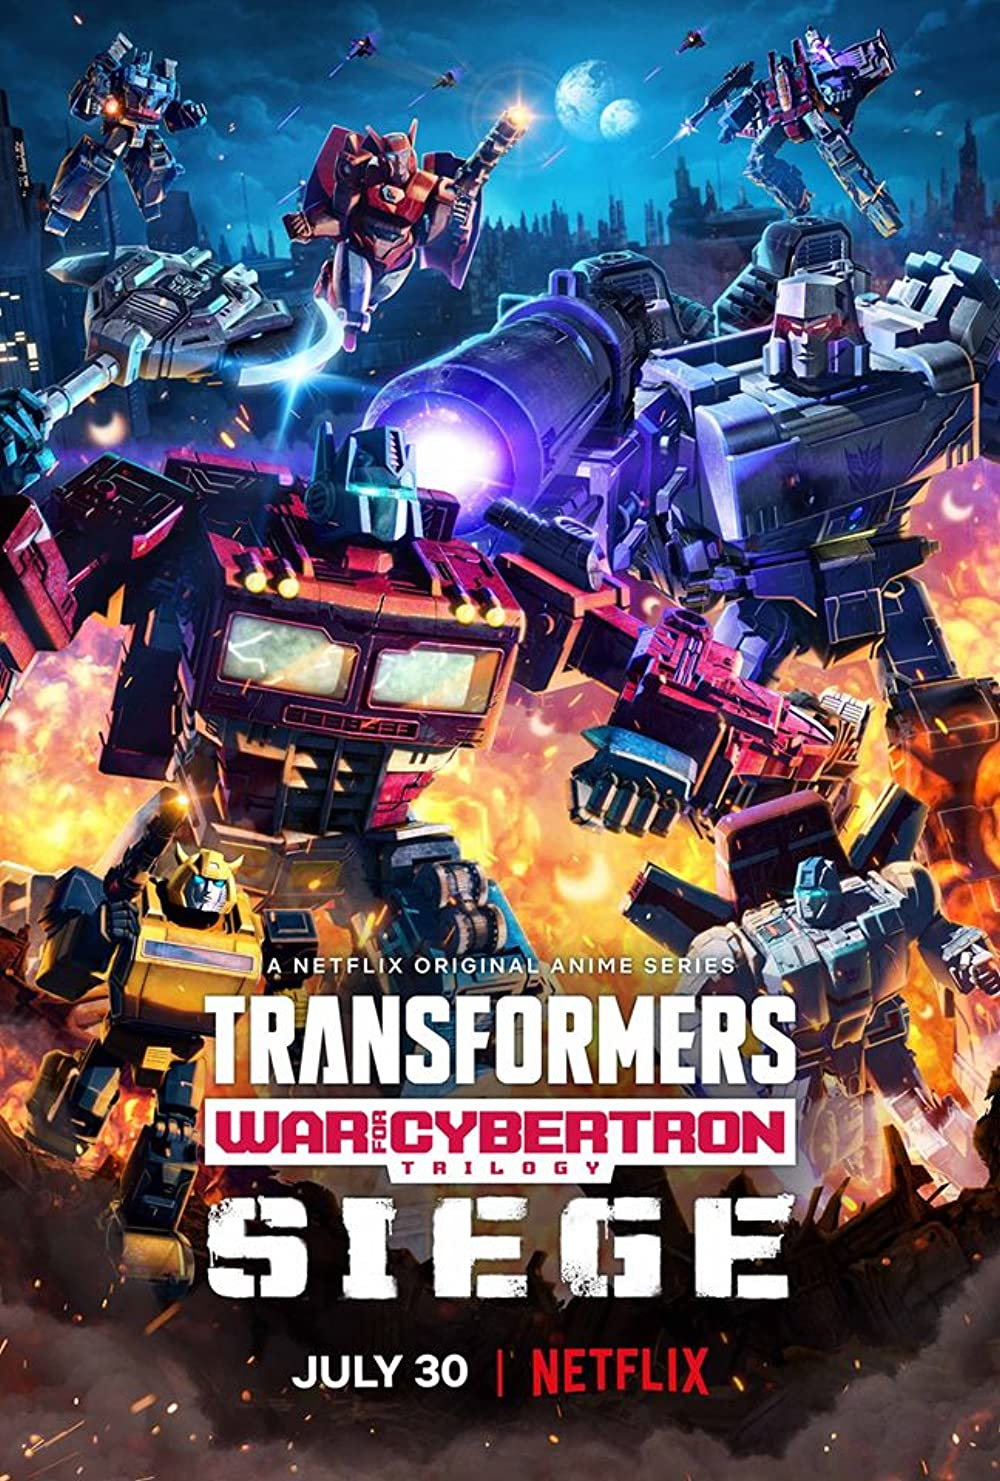 Transformers War for Cybertron Kingdom 2021 S01 Hindi Dubbed Complete NF Series 720p HDRip 1GB Download